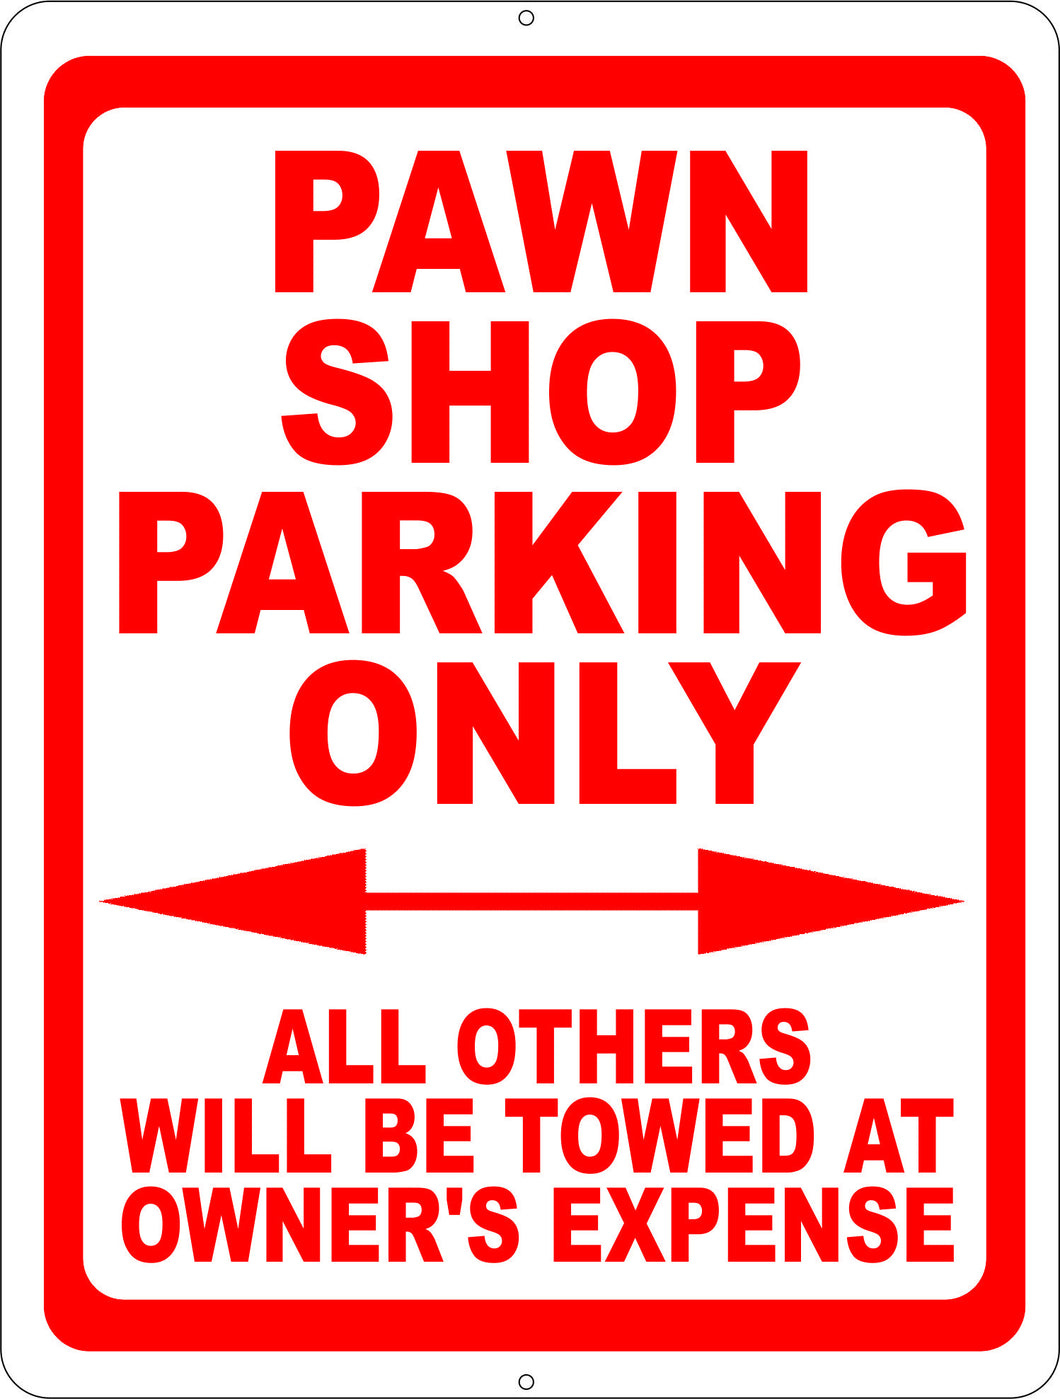 Pawn Shop Parking Only All Others Towed at Owners Expense Sign - Signs & Decals by SalaGraphics